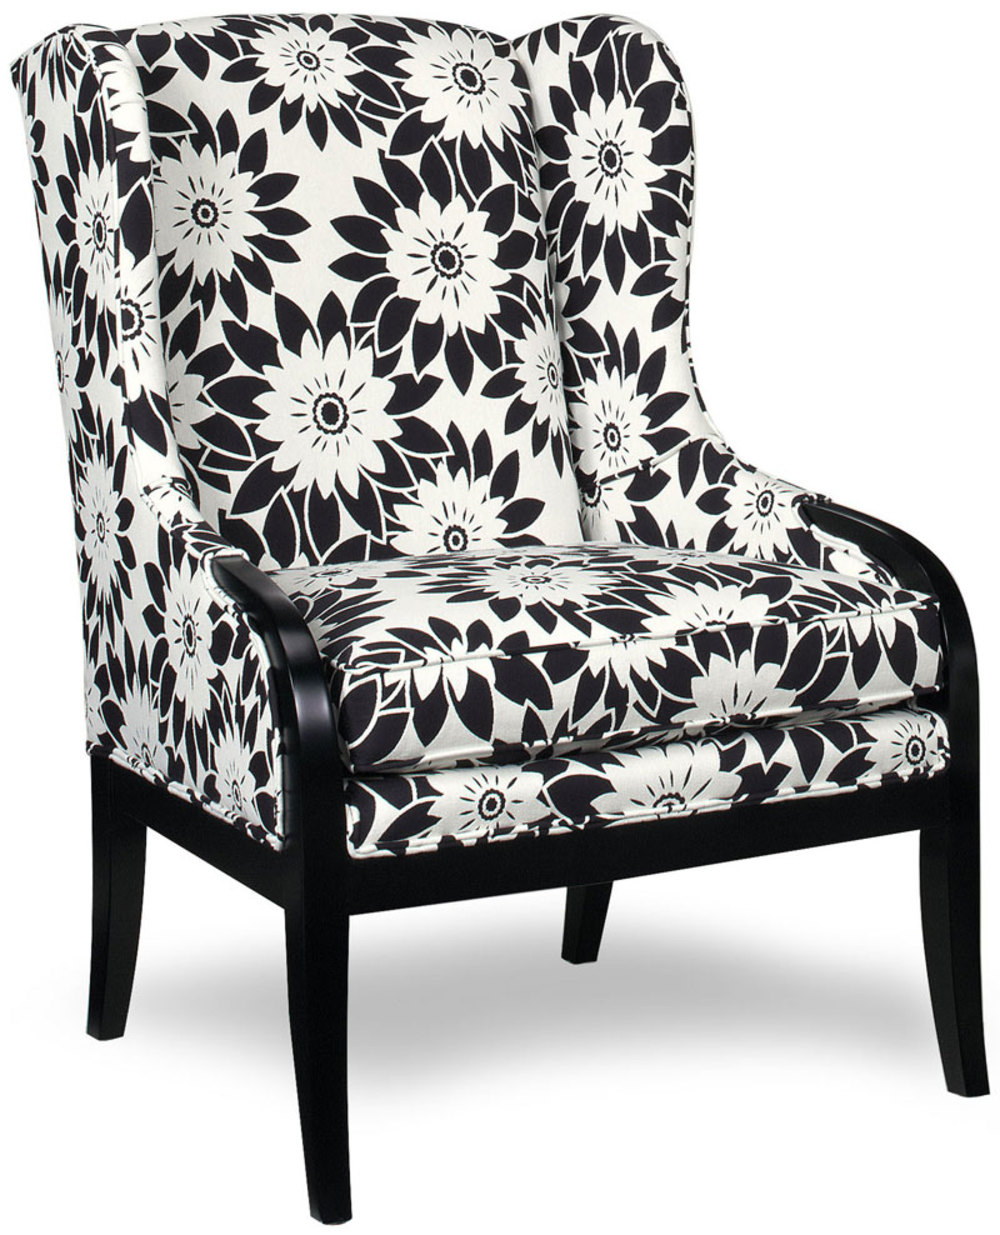 Temple Furniture - Hickory Chair